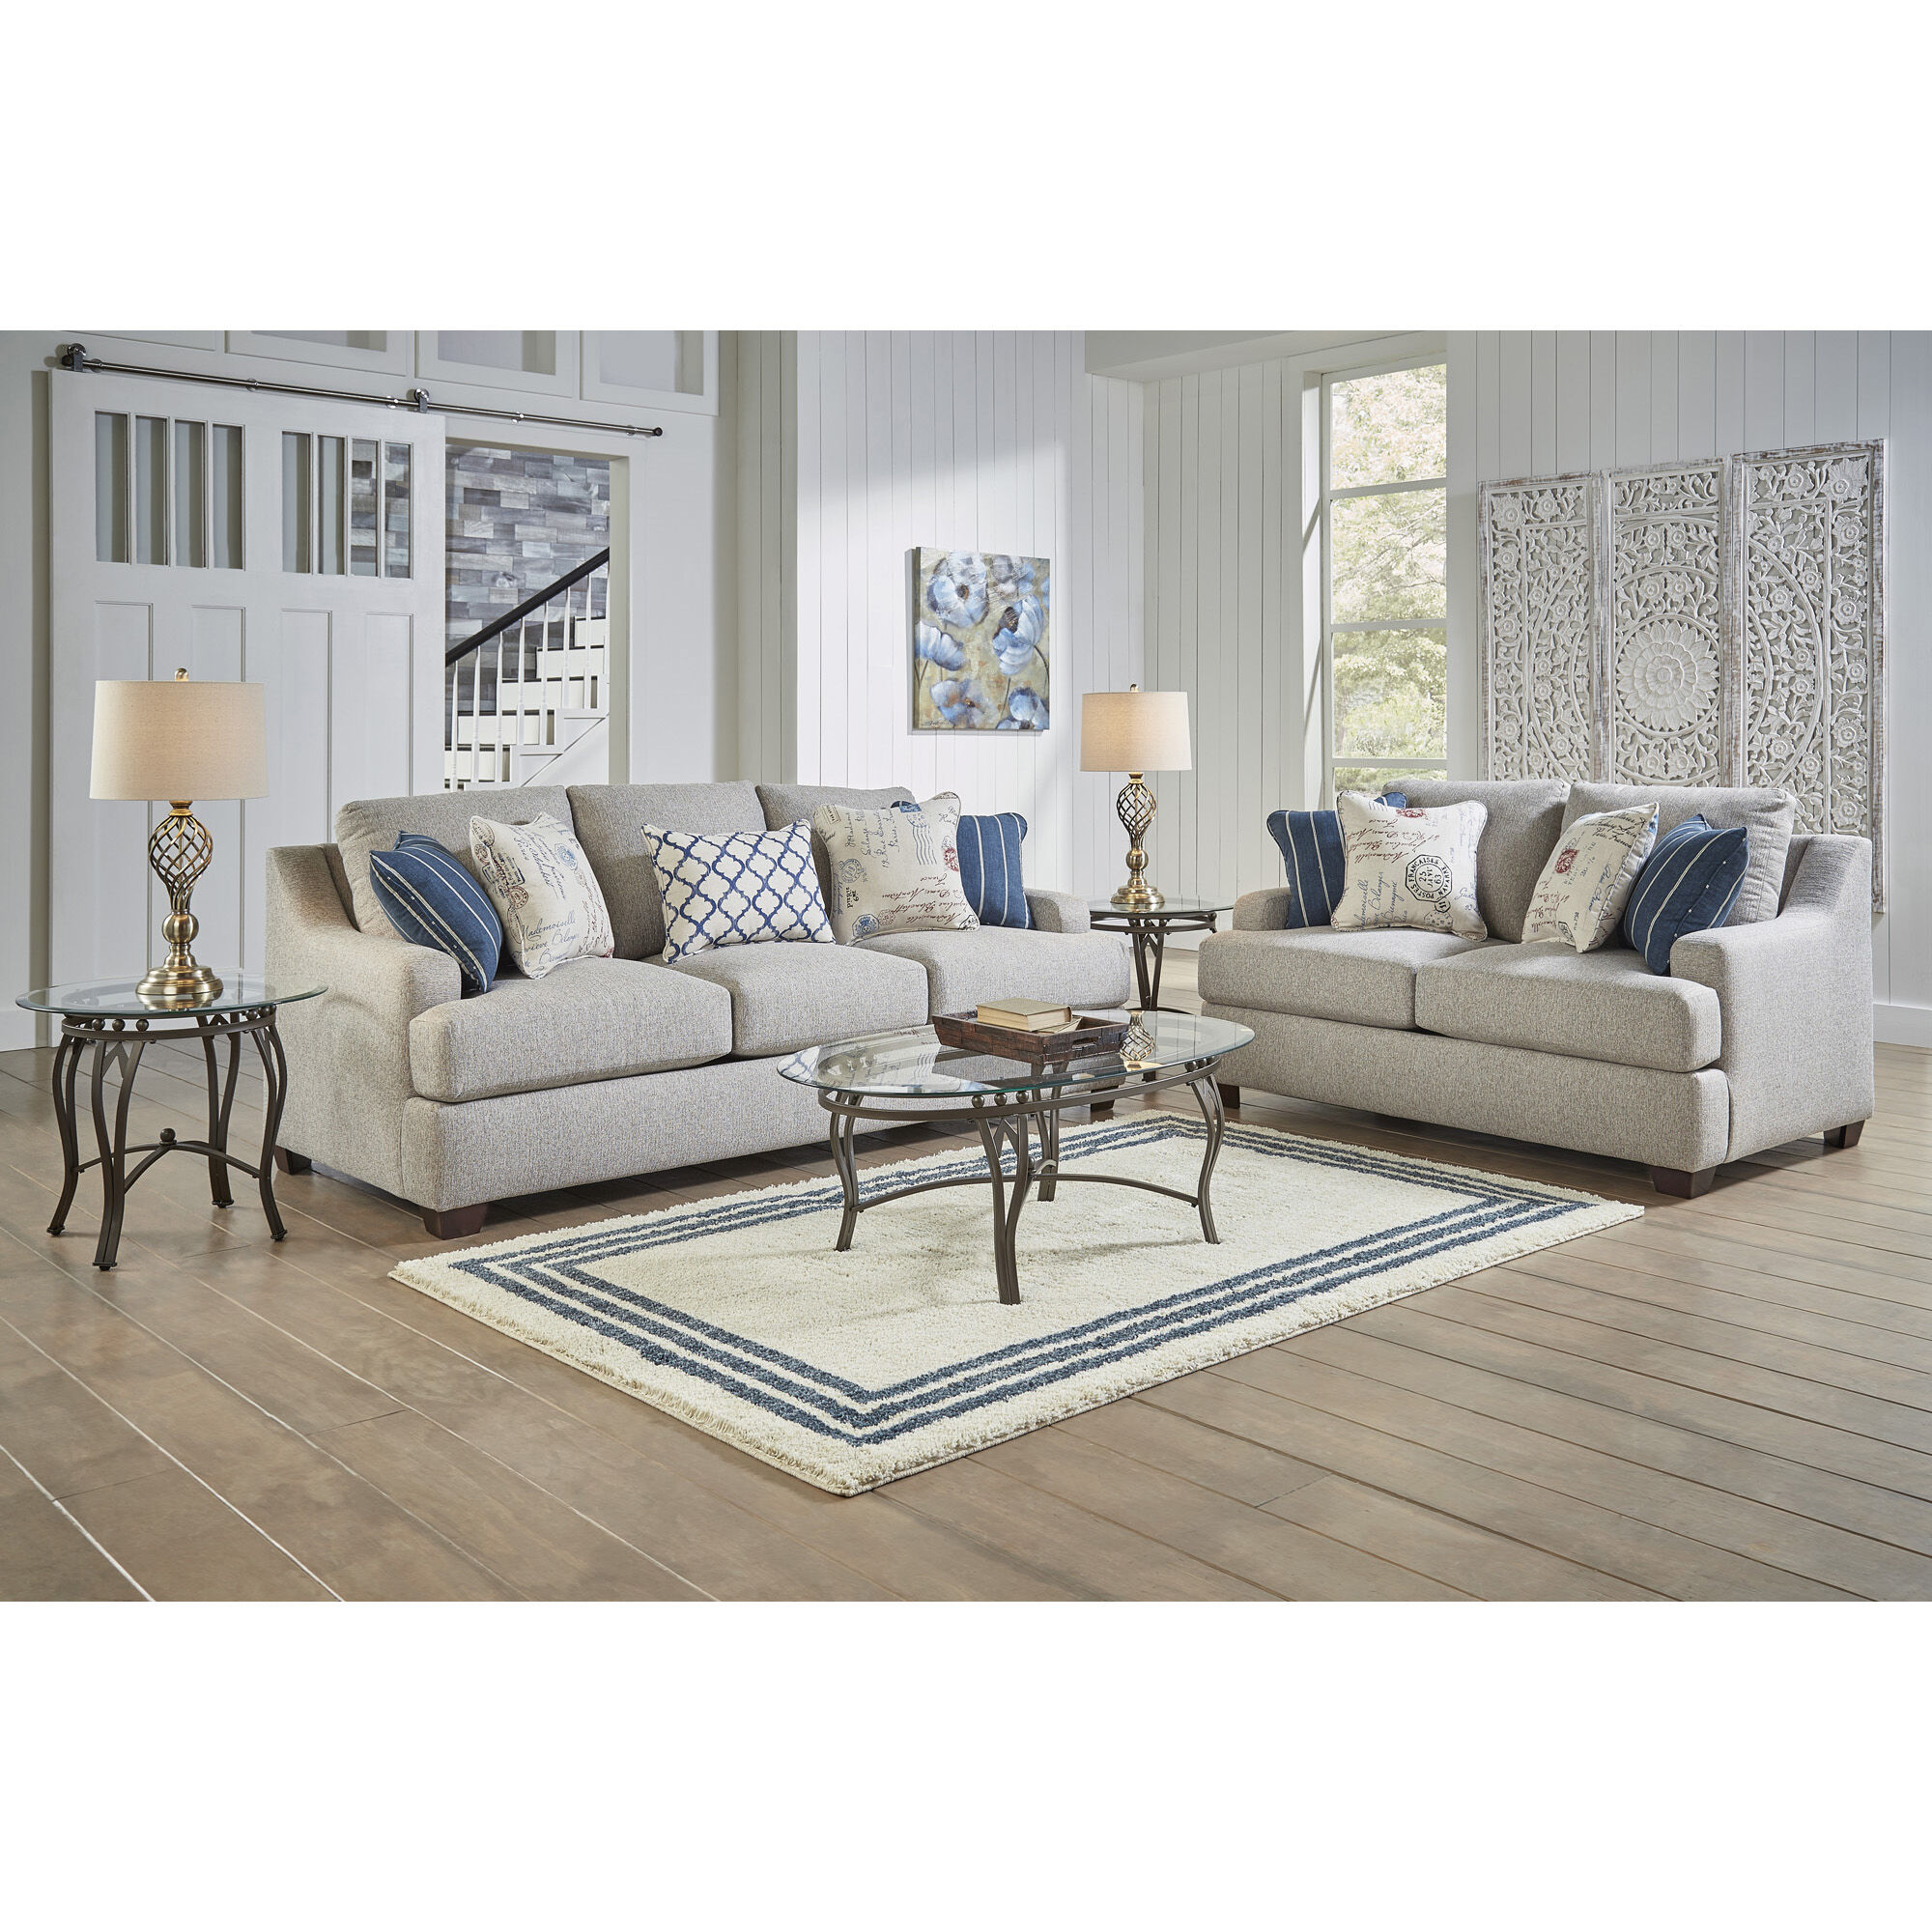 2 Piece Flora Living Room Collection